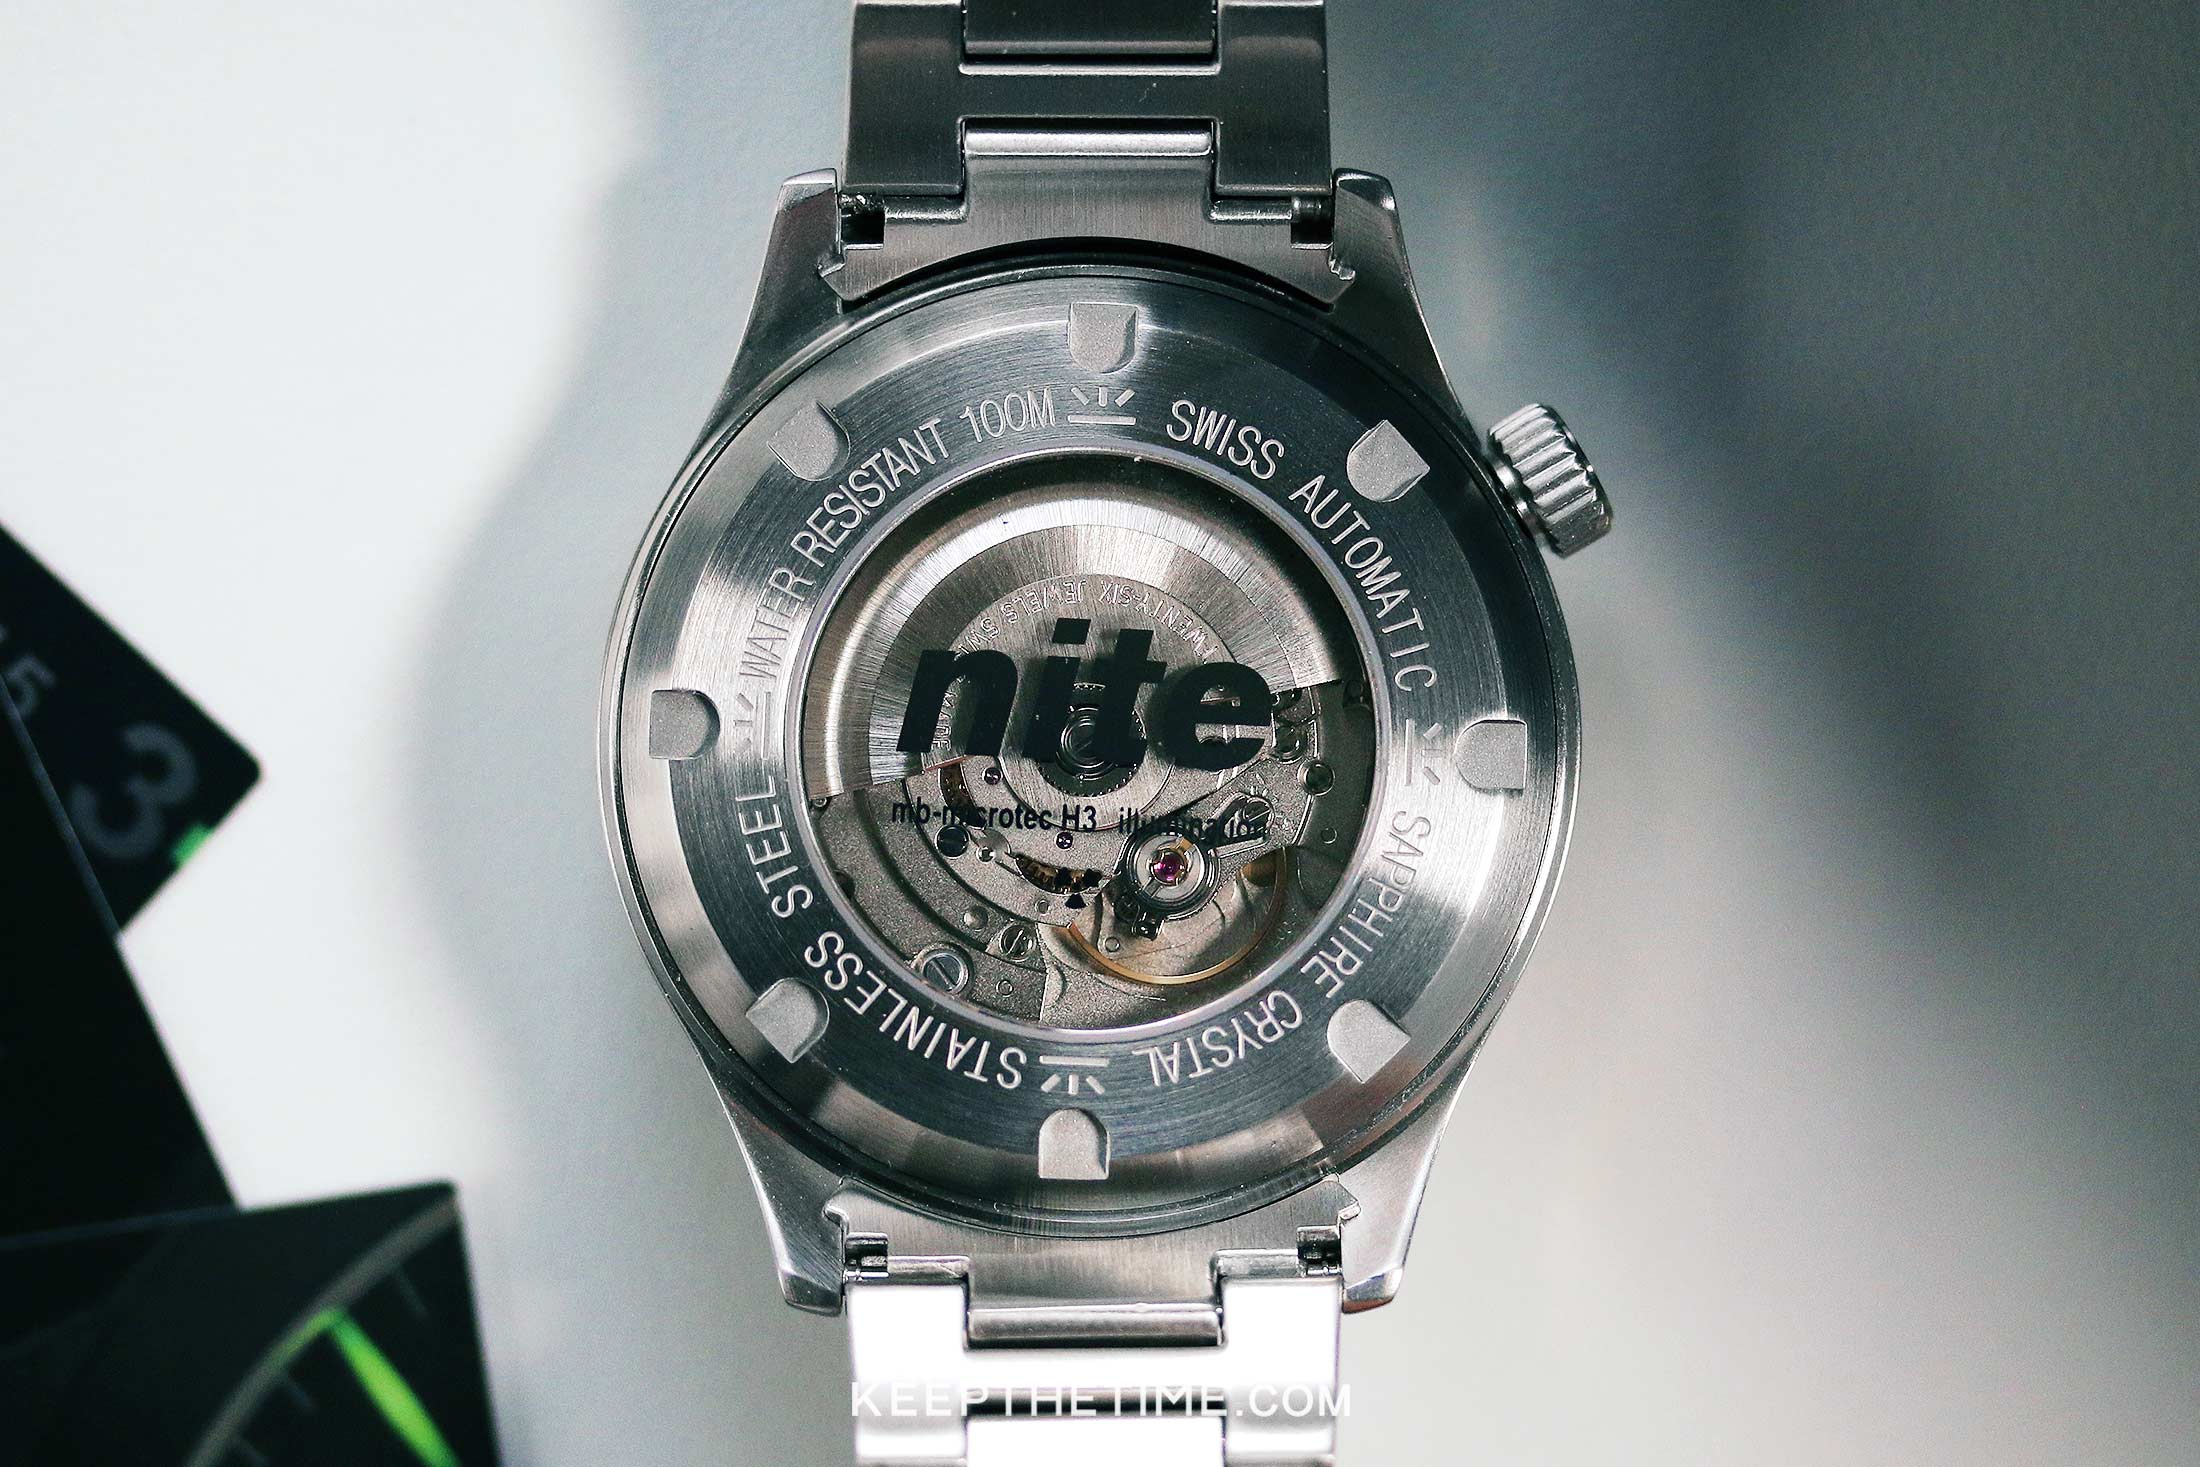 SW200-1 in a Nite Icon watch